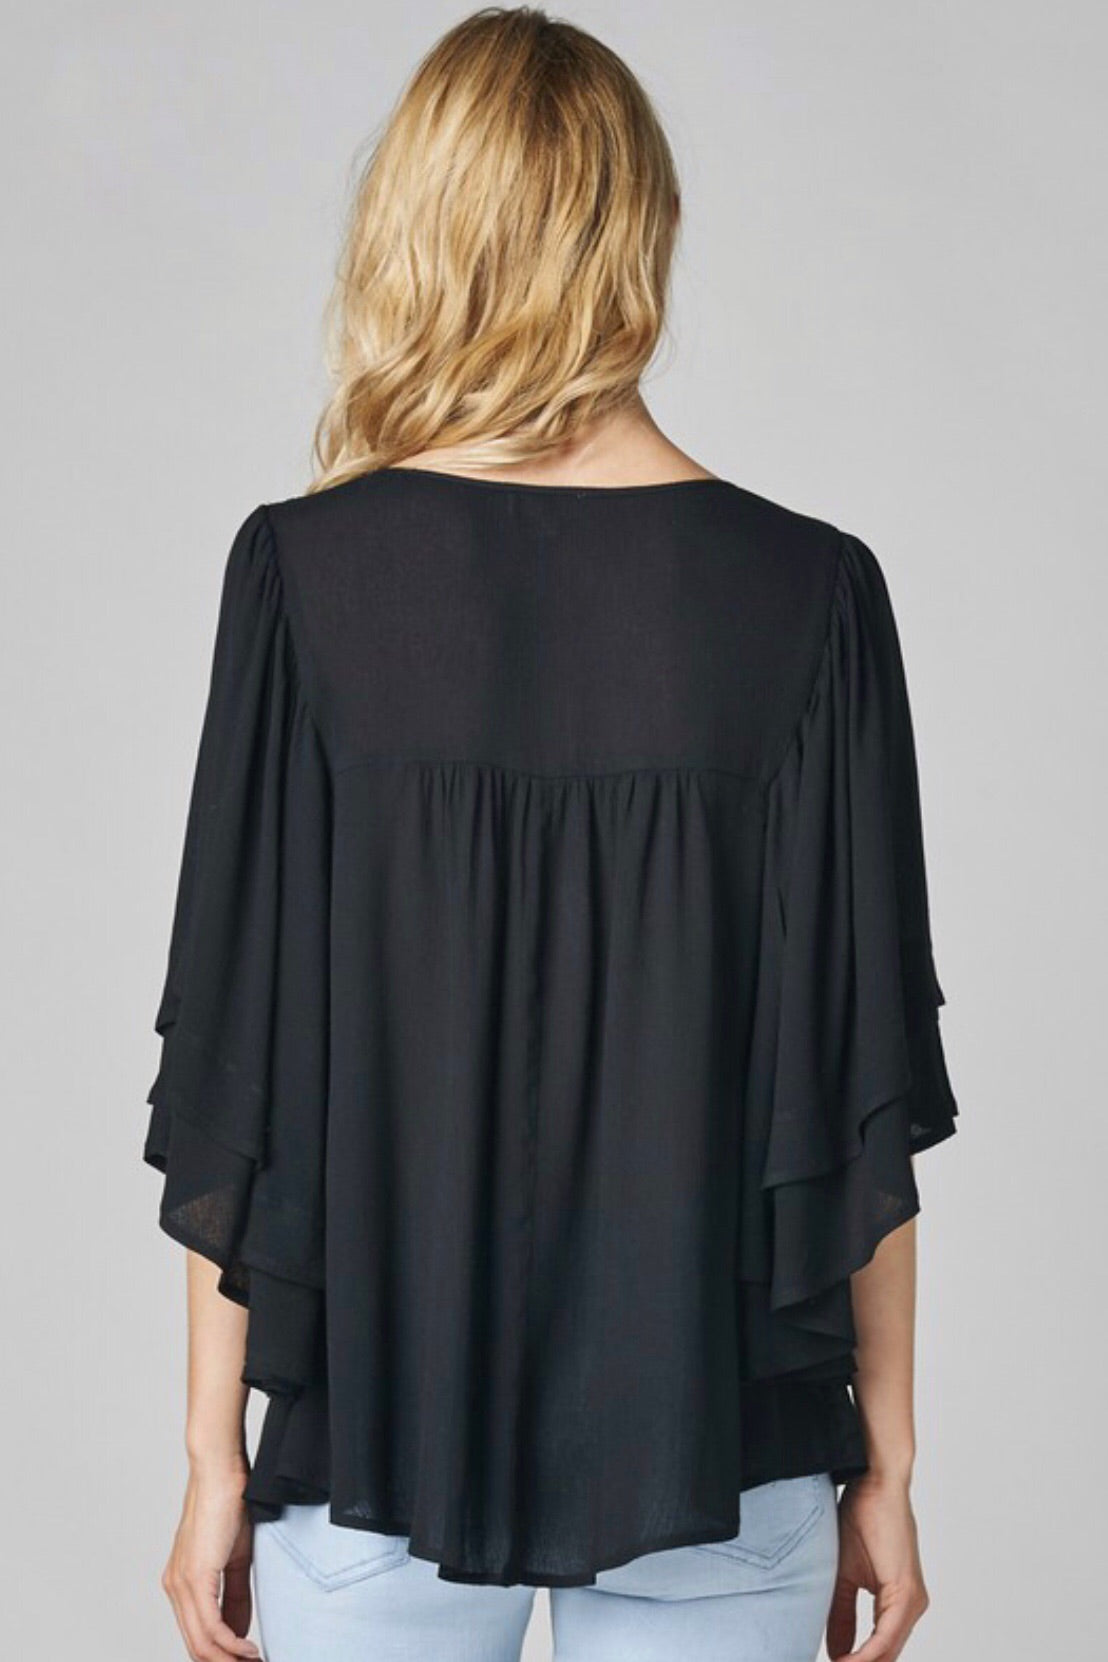 Just A Season Lace Trim Dolman Sleeve Peasant Top with tassel ties, Black